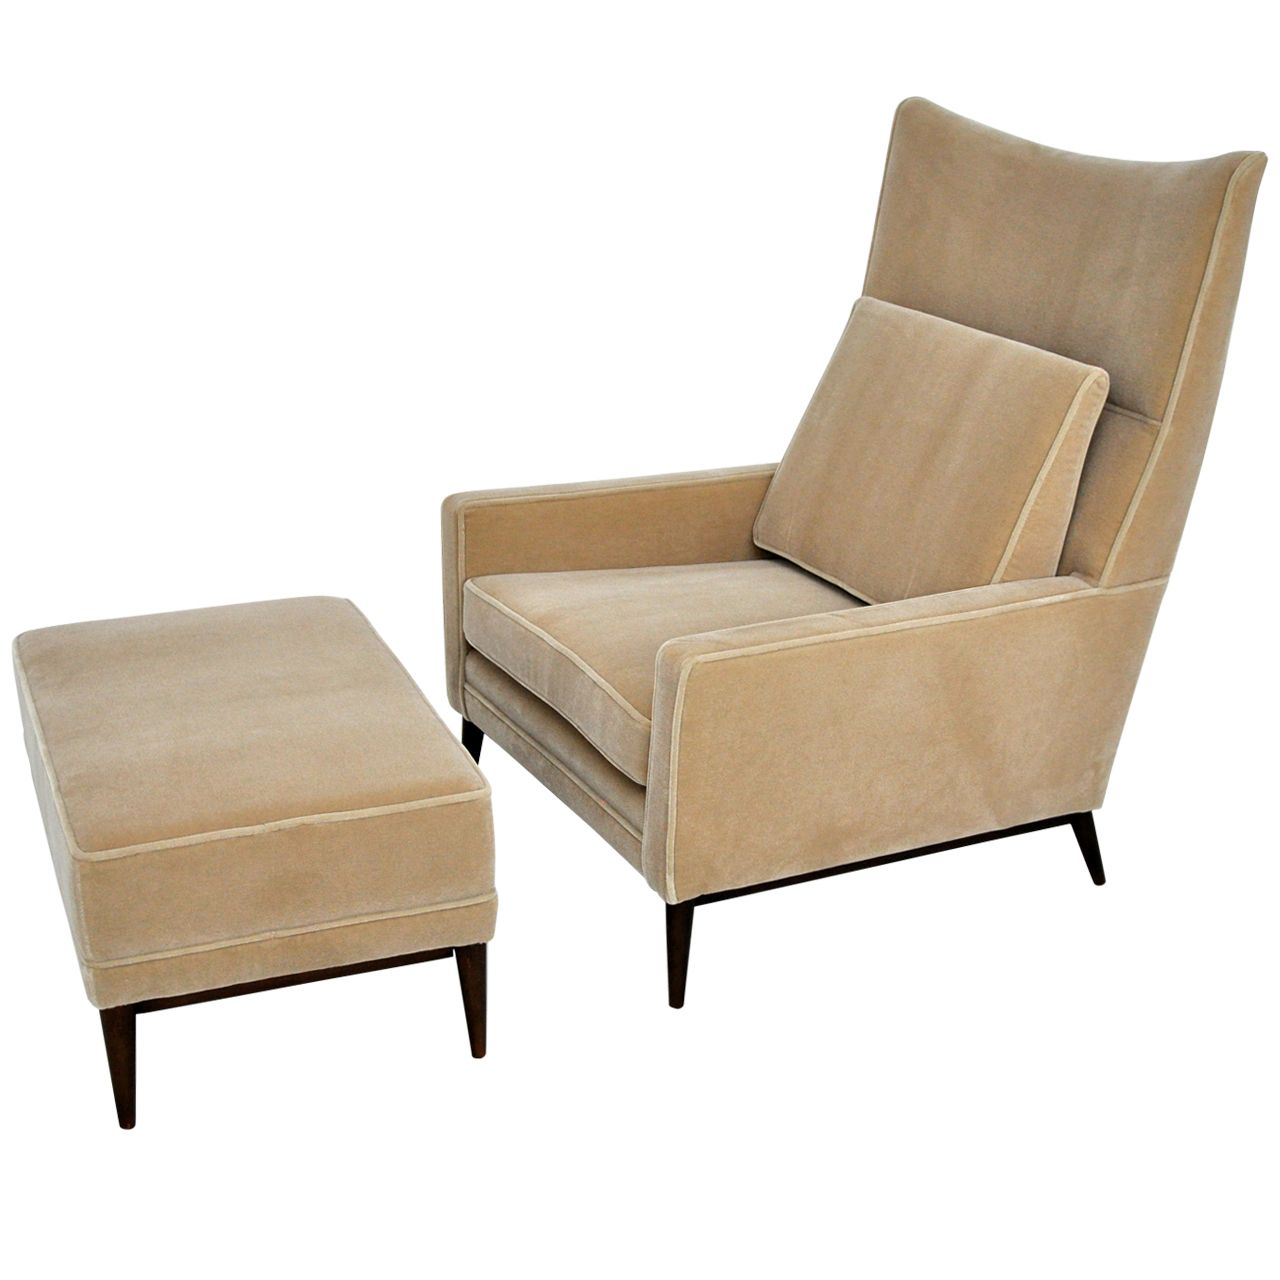 Antique lounge chairs - Paul Mccobb Lounge Chair Ottoman